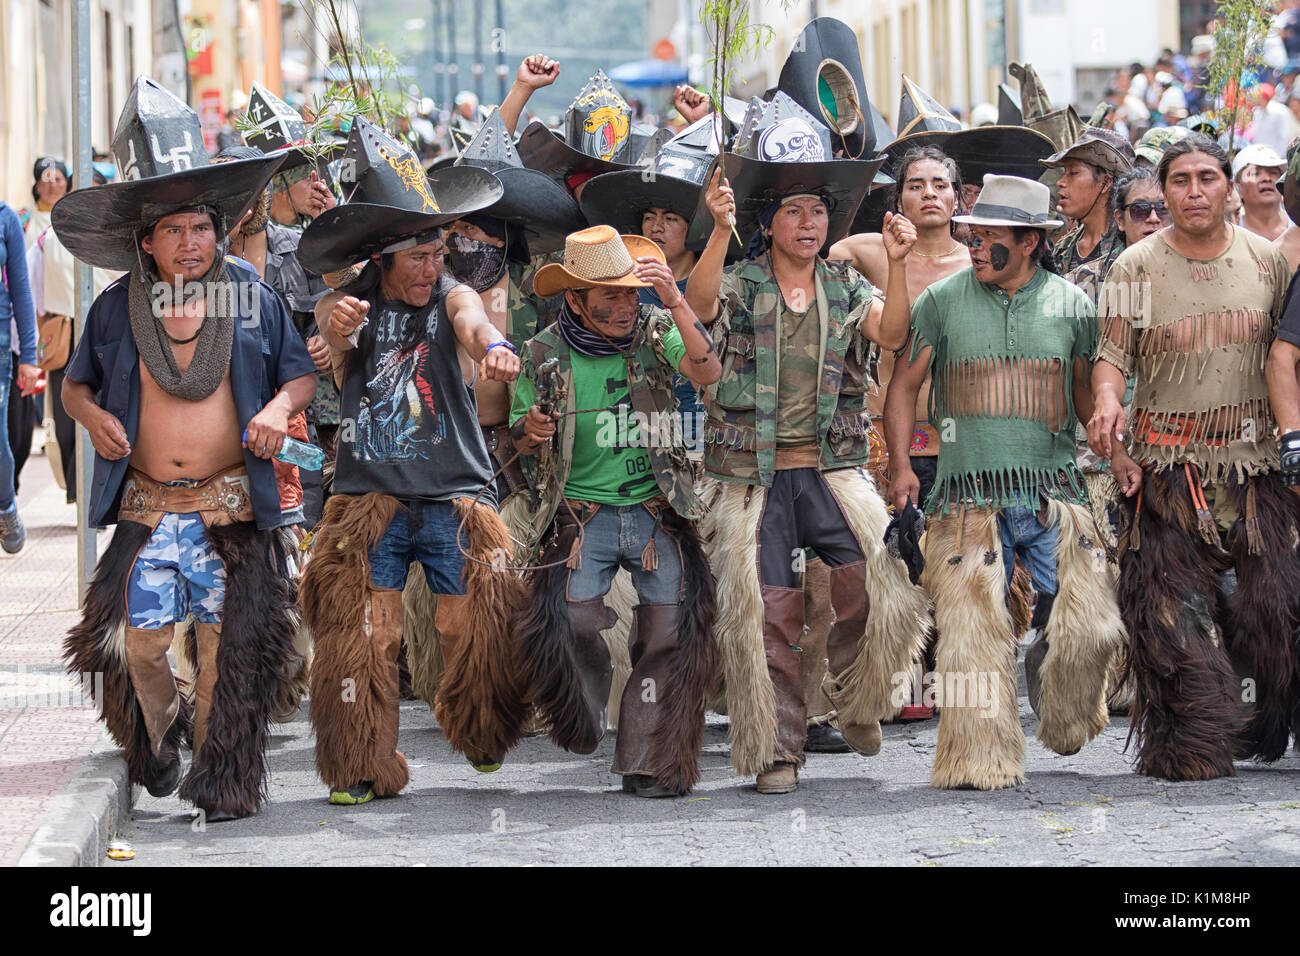 quechua indigenous people participating at the annual Inti Raymi parade at the summer solstice - Stock Image